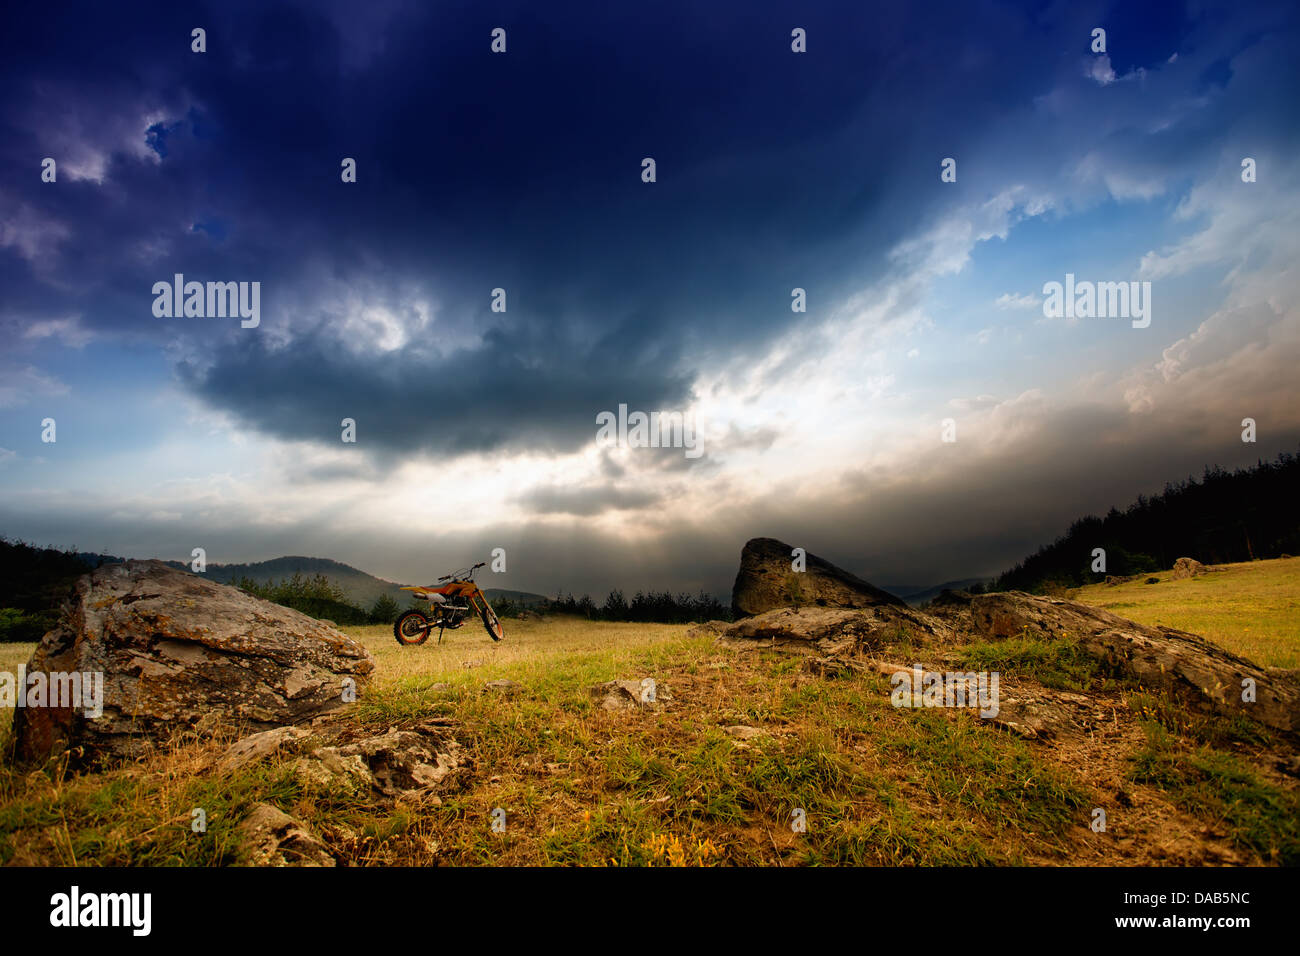 scenic HDR sunset with dirt bike - Stock Image